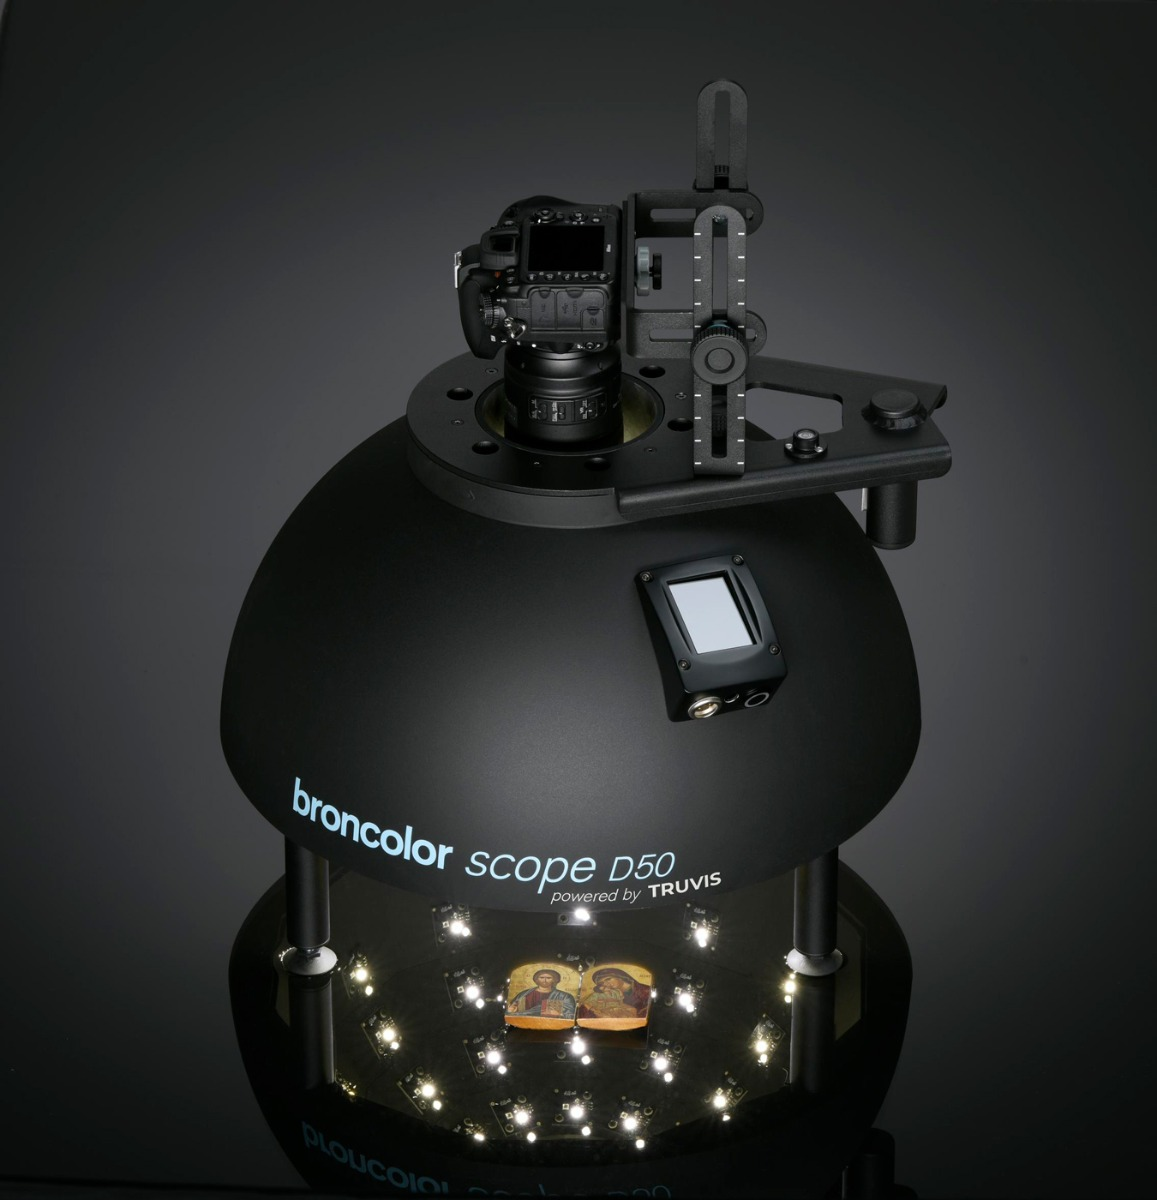 Broncolor Scope D50 portable surface visualisation system.